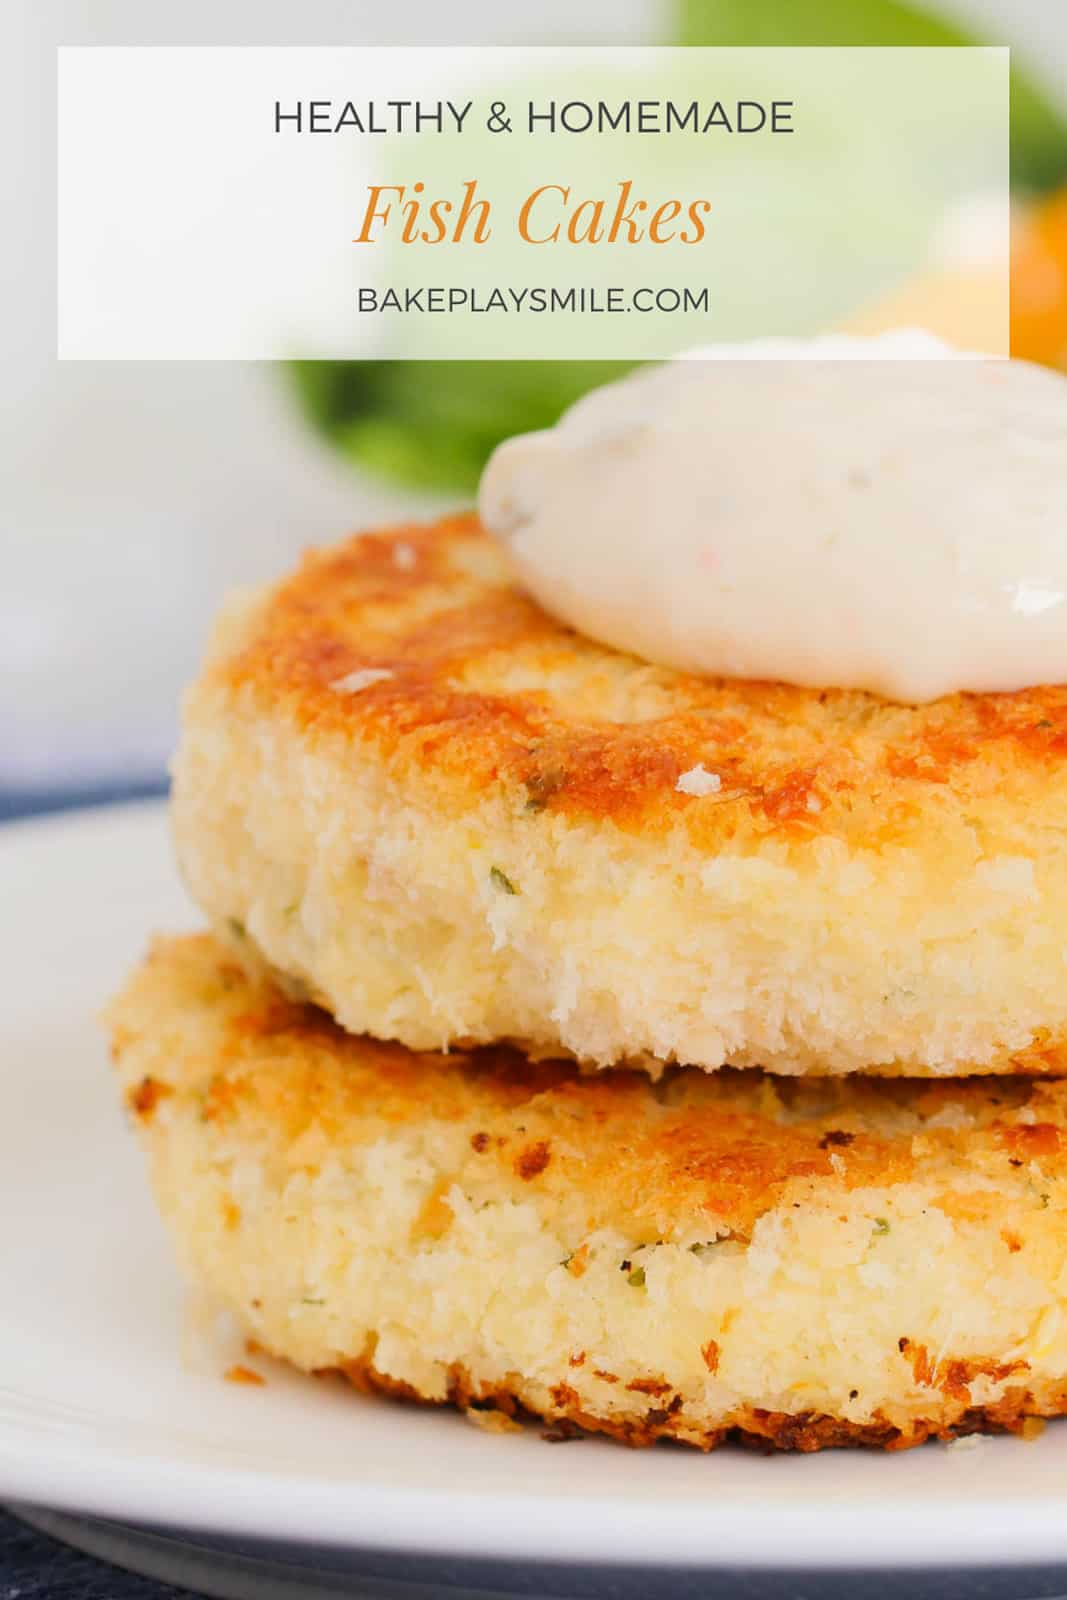 Two crispy golden fish cakes stacked with a dollop of tartare sauce on top